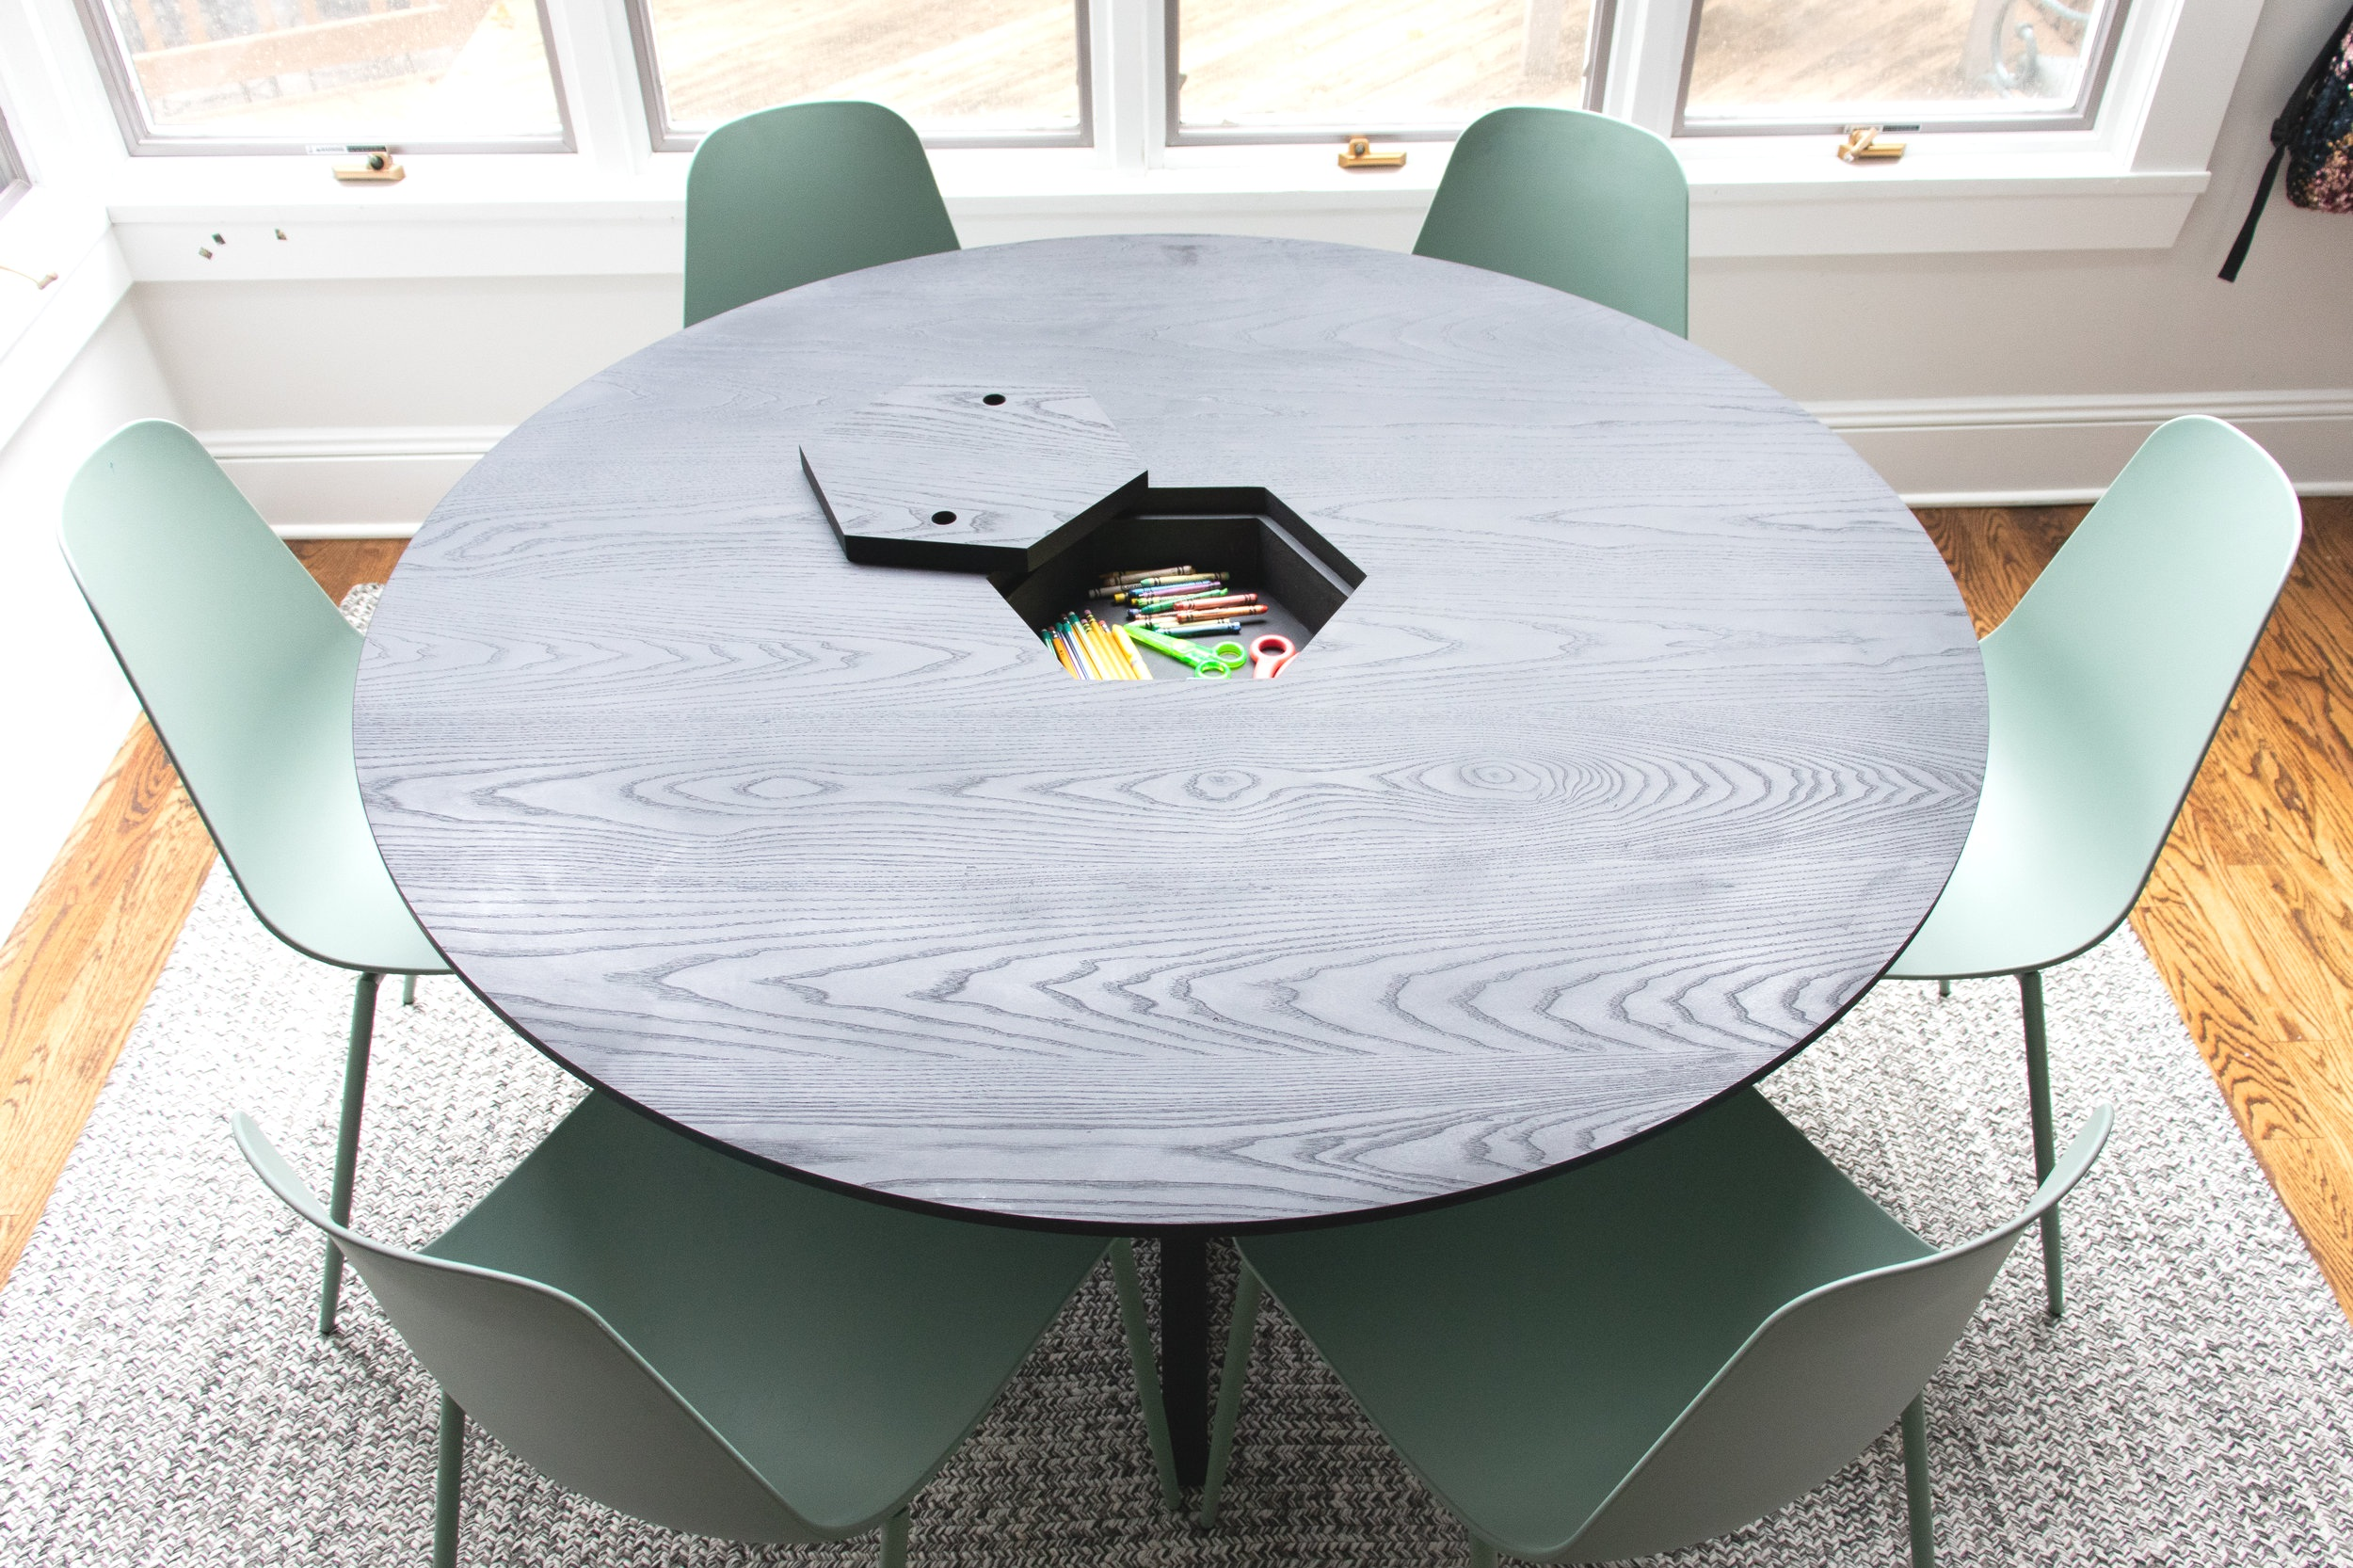 Dining Table with Storage - DIY Furniture